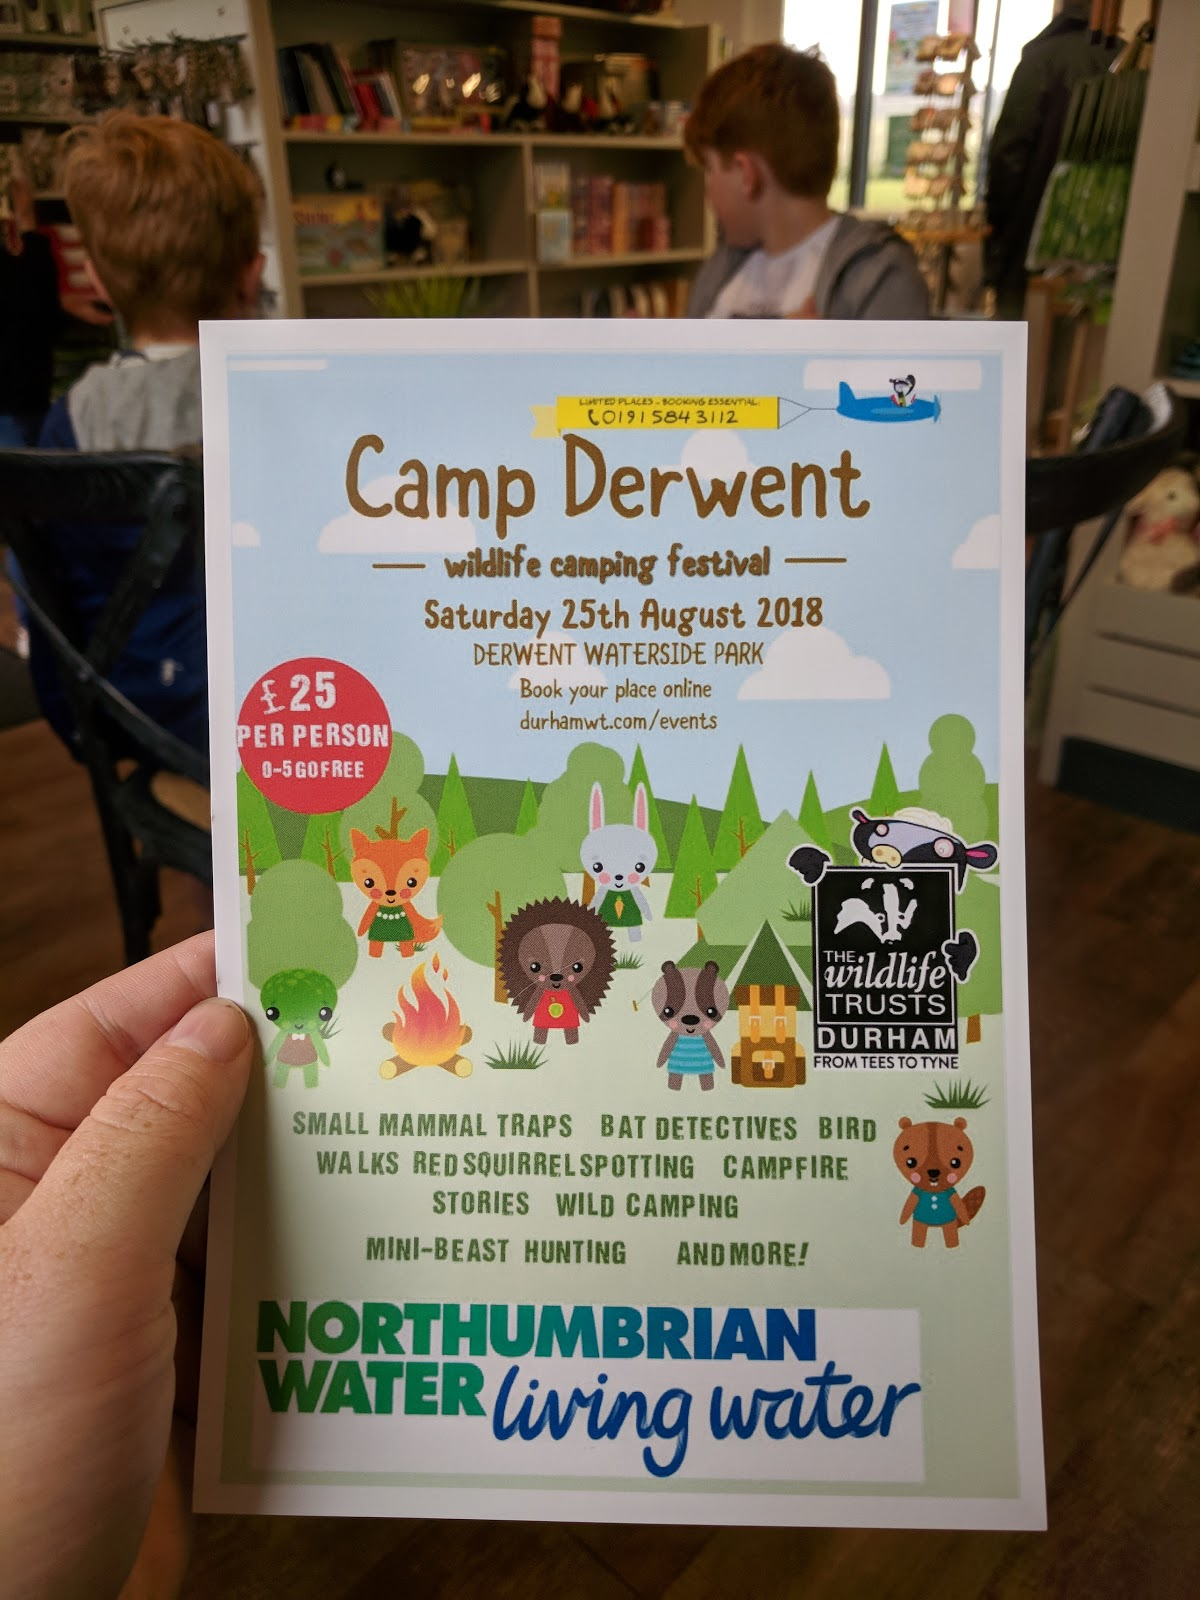 FREE Nature Trail at Derwent Waterside Park, Consett  - camp derwent wild camping